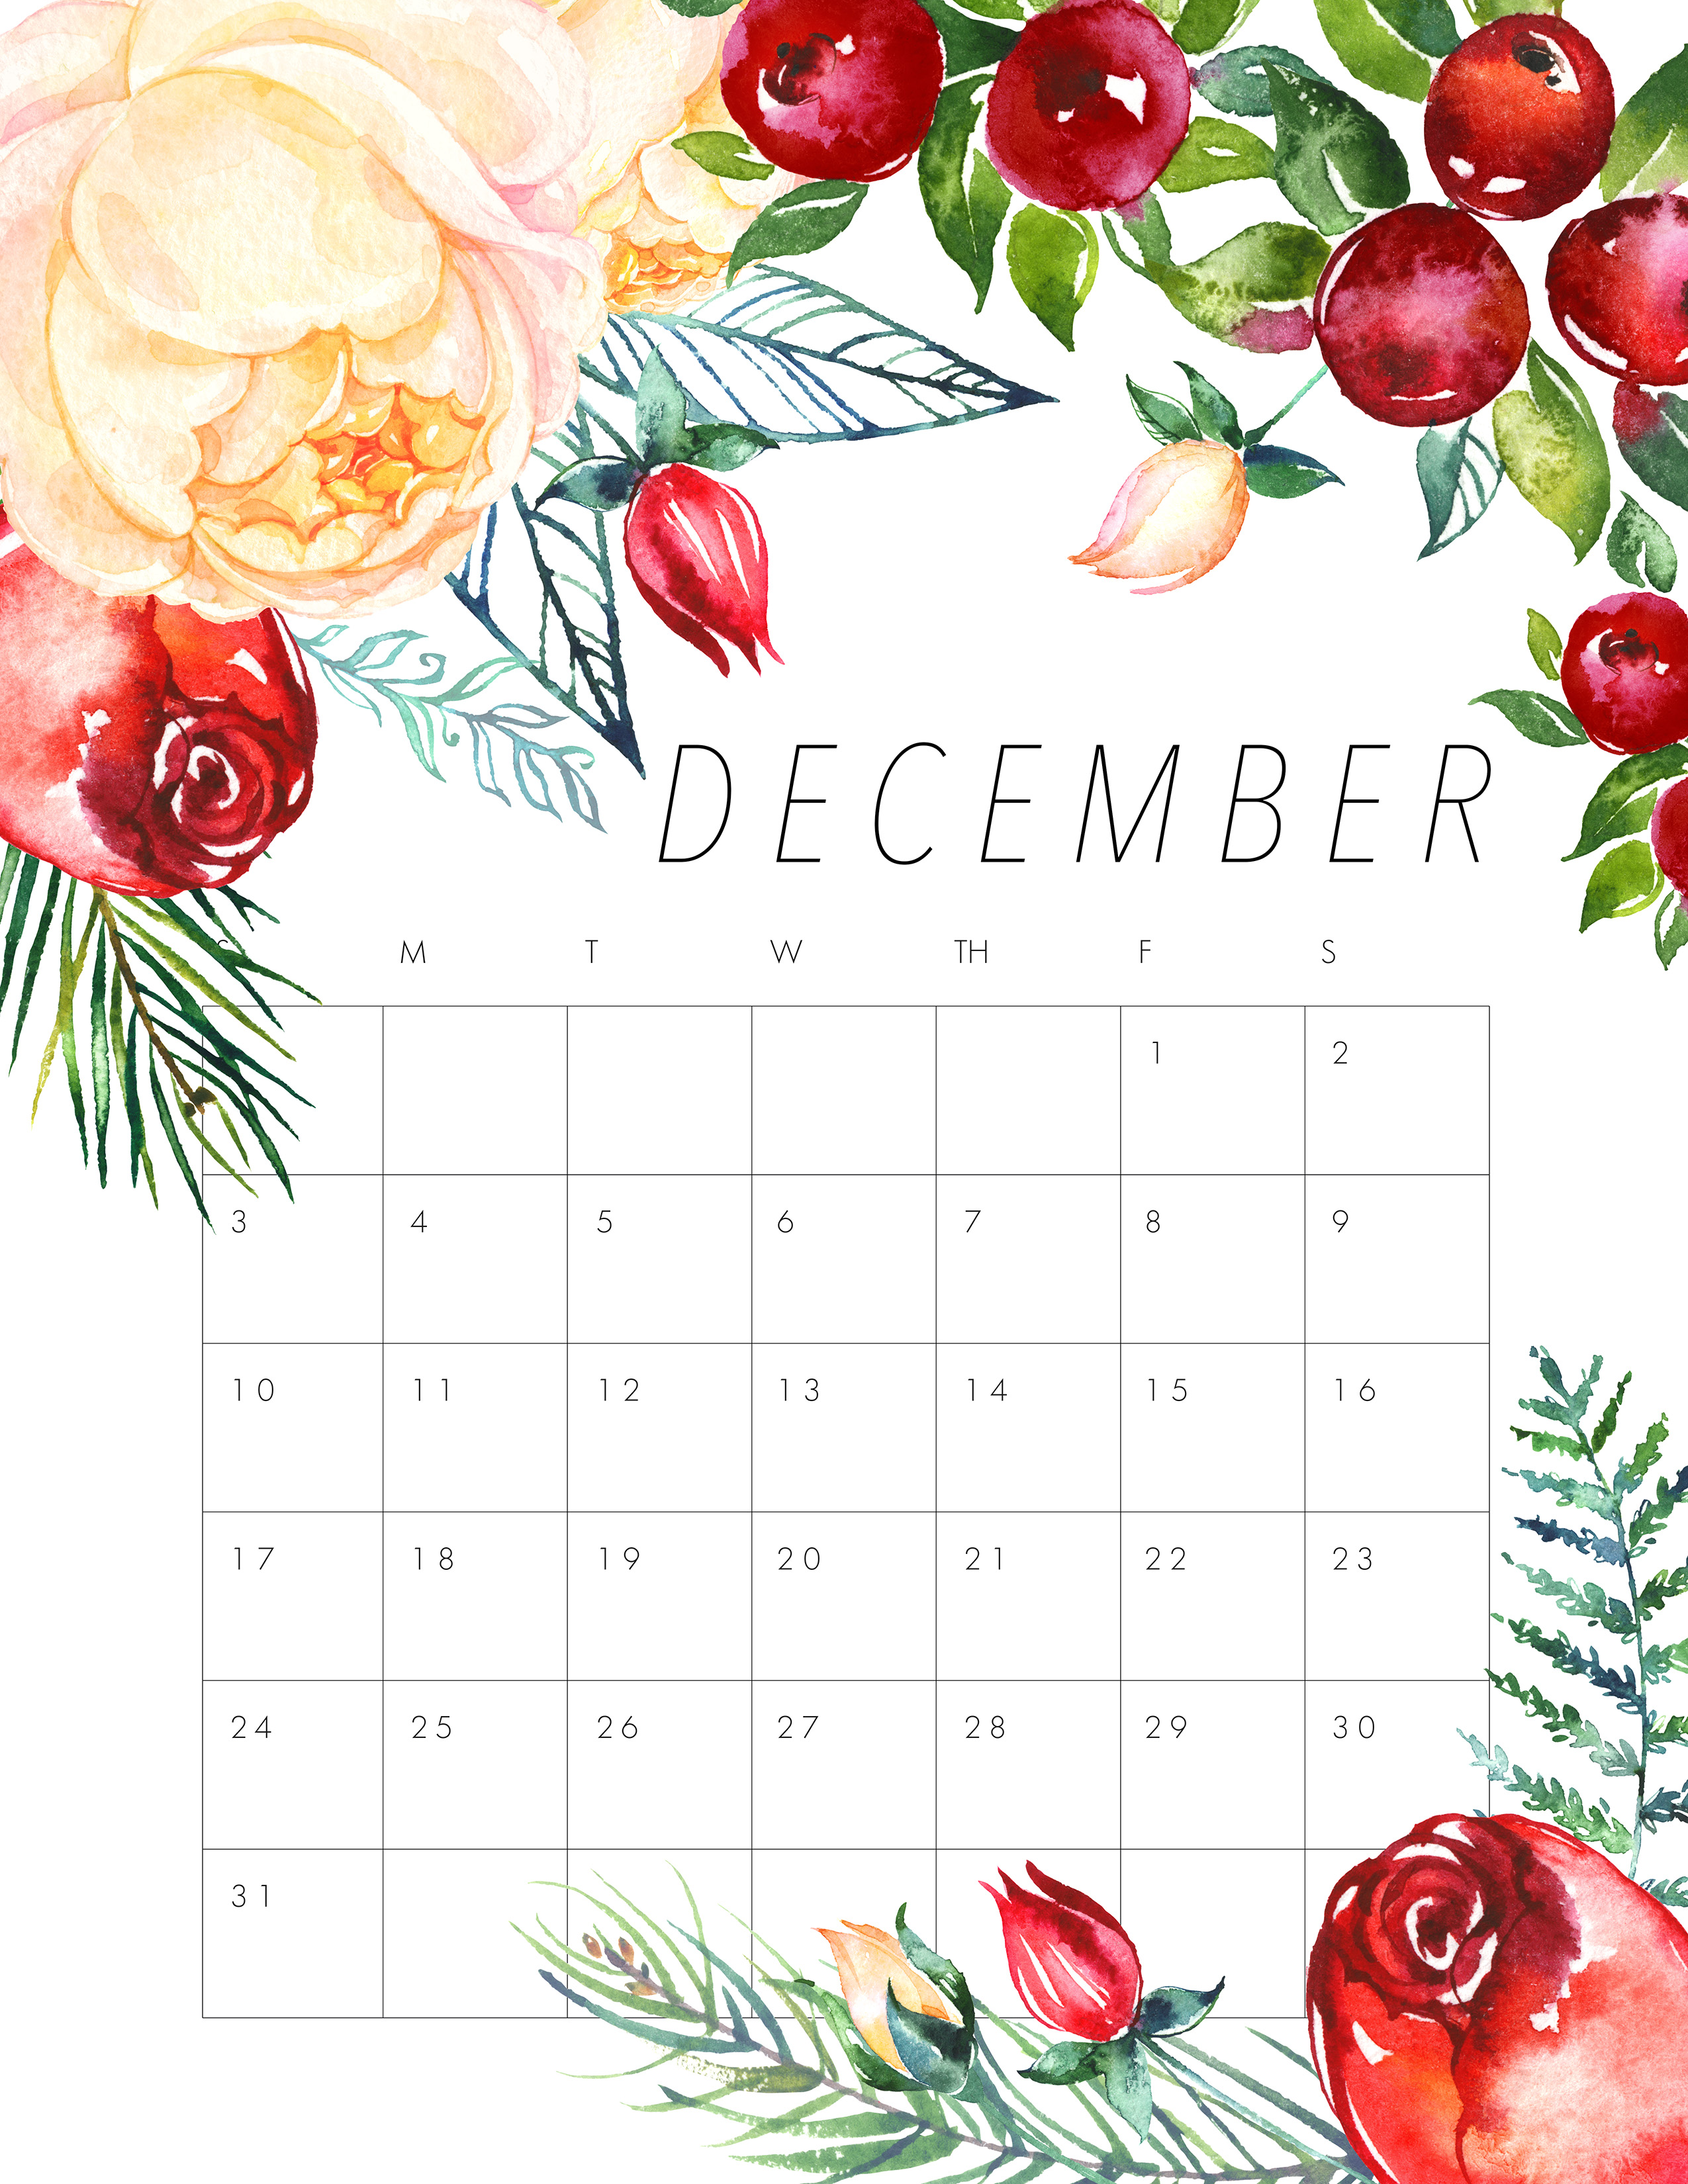 How To Make A New Google Calendar October 8 New Google Calendar Features You Should Start Using Now Free Printable 2017 Floral Calendar The Cottage Market